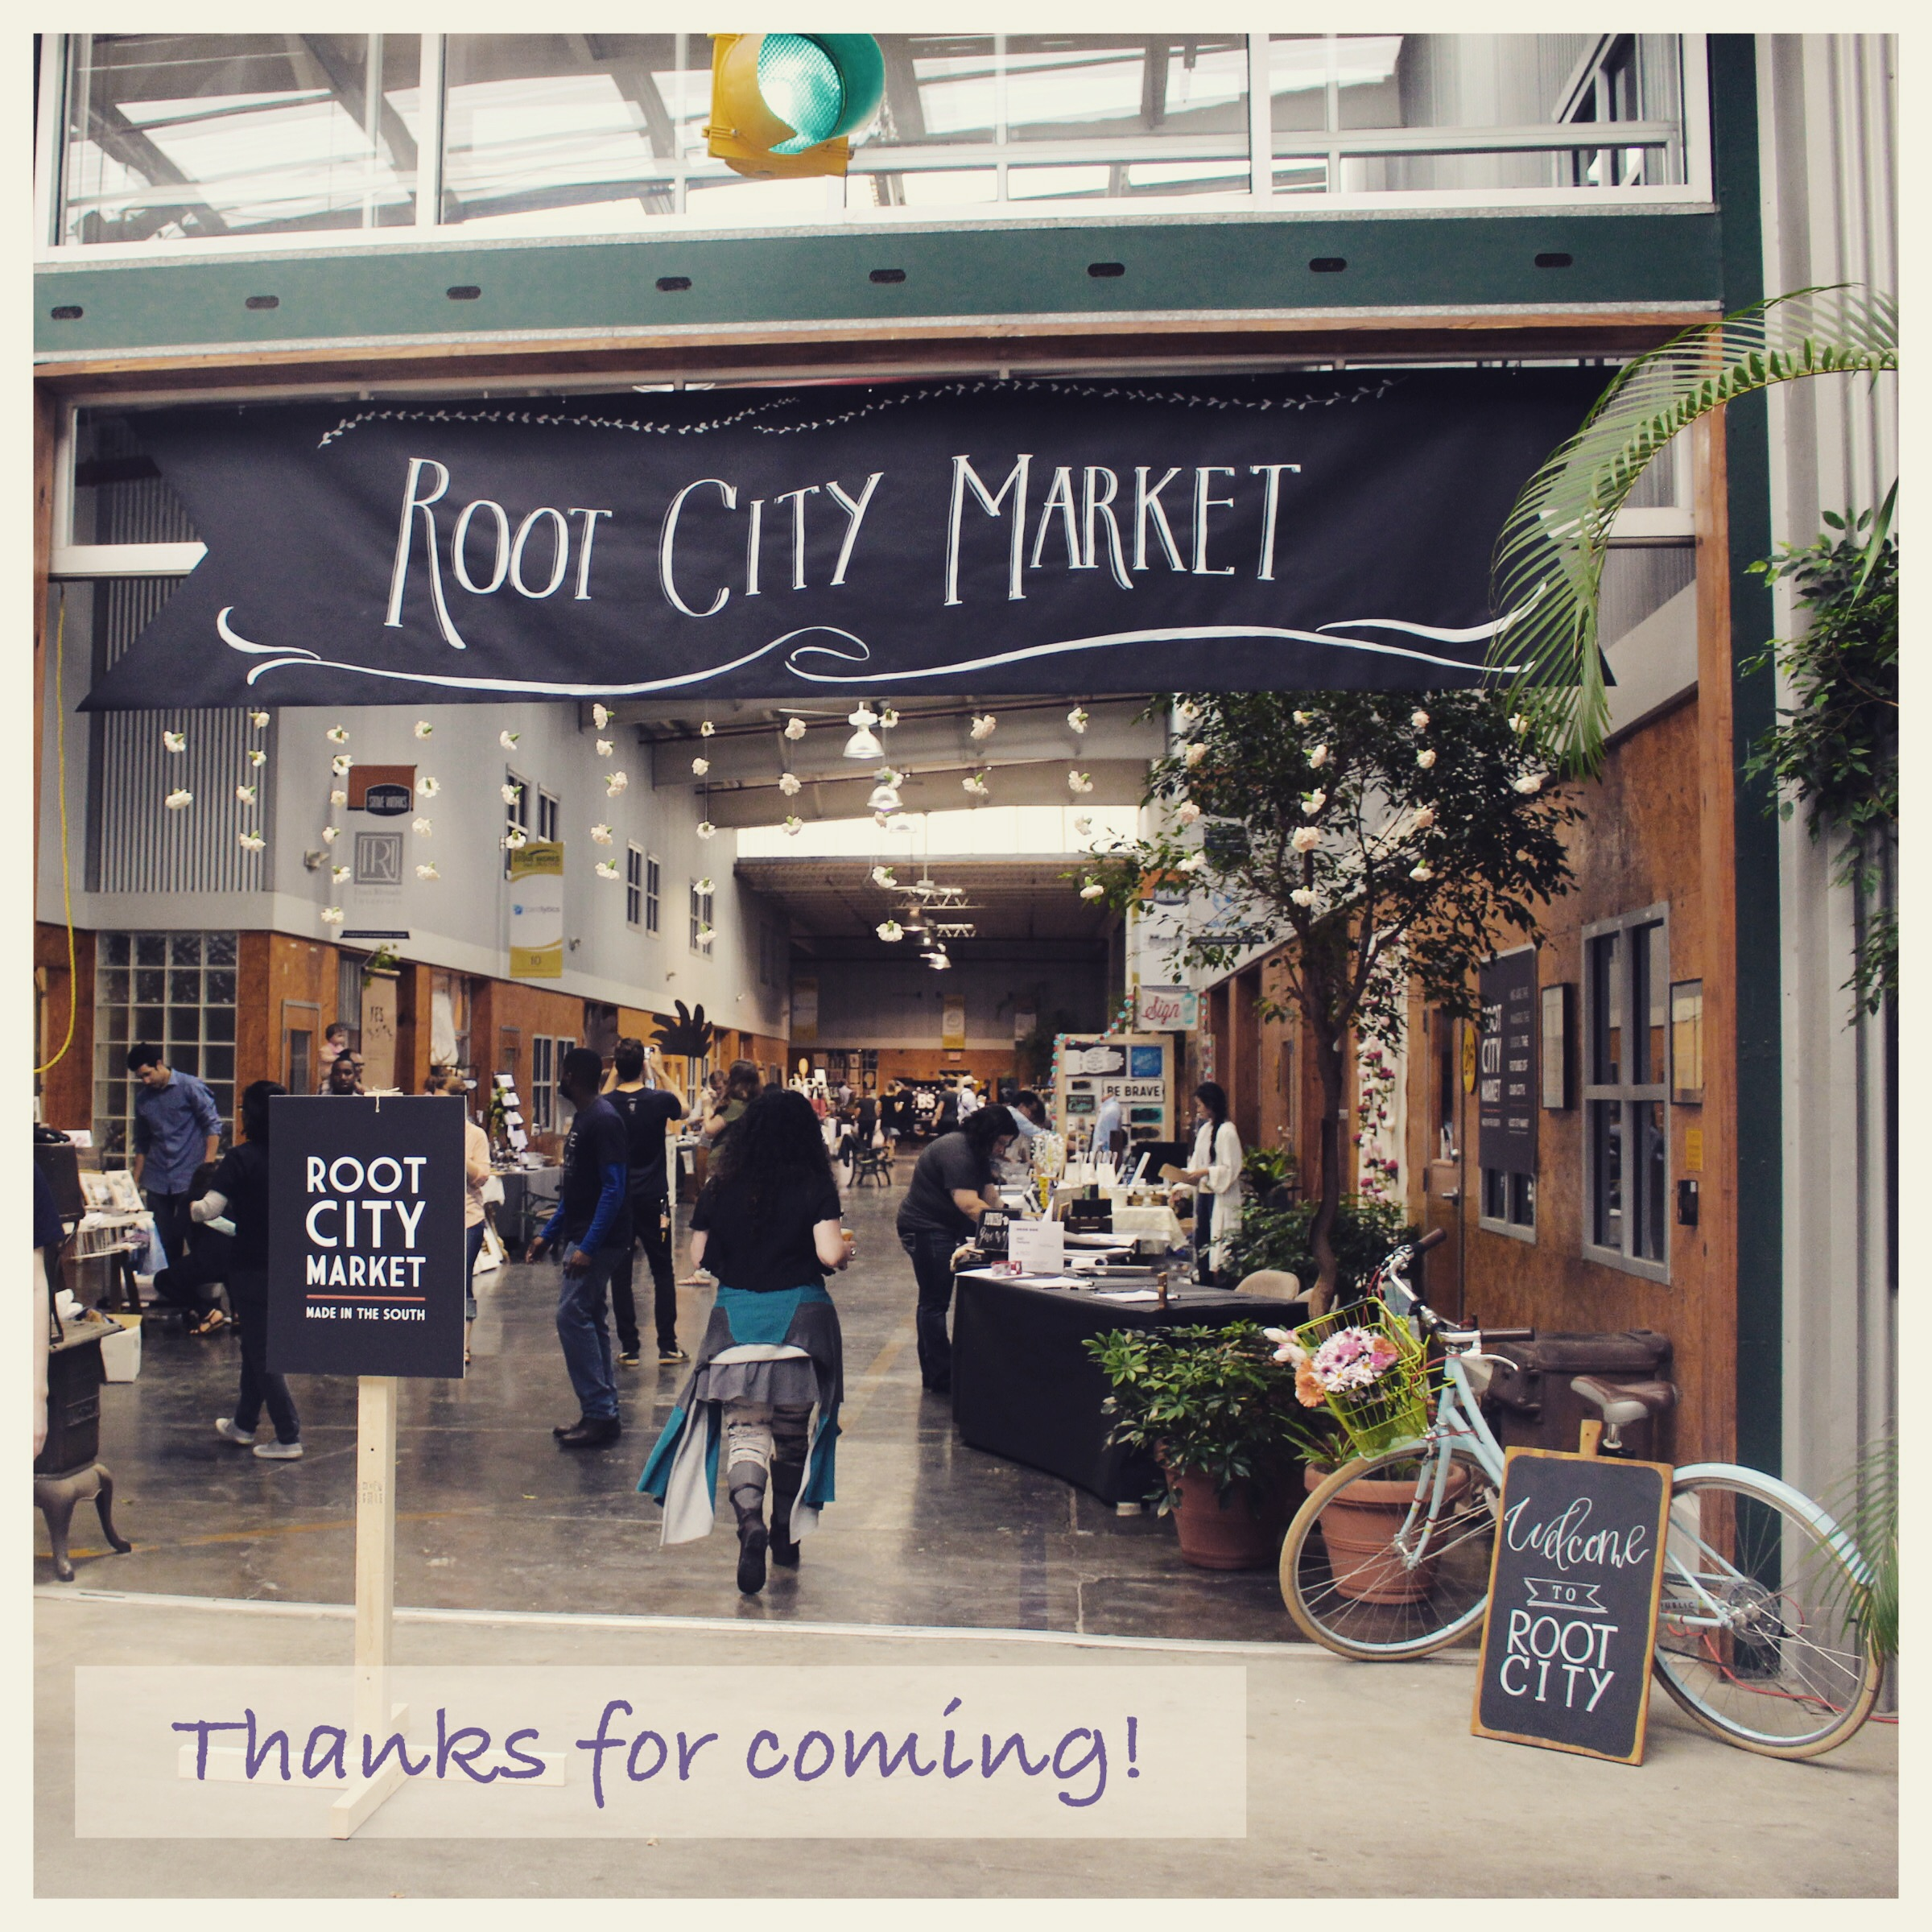 City Market - Center Avenue Ste , Bay City, Michigan - Rated based on Reviews